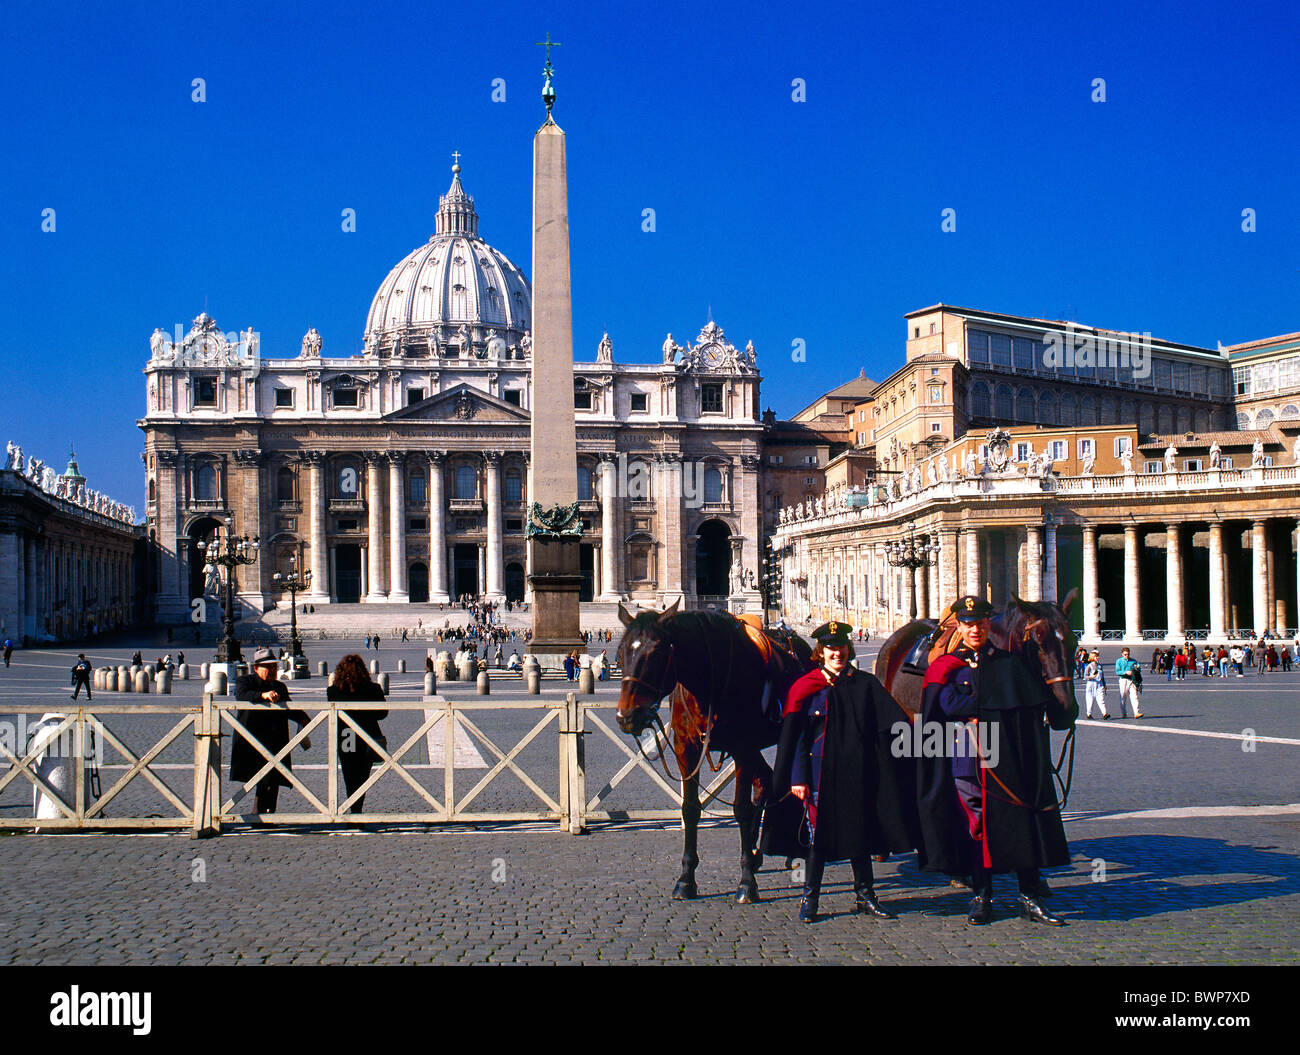 Vatican city January 2007 Europe St. Peter Square St. Peter Basilica police horses tourists UNESCO World heri - Stock Image